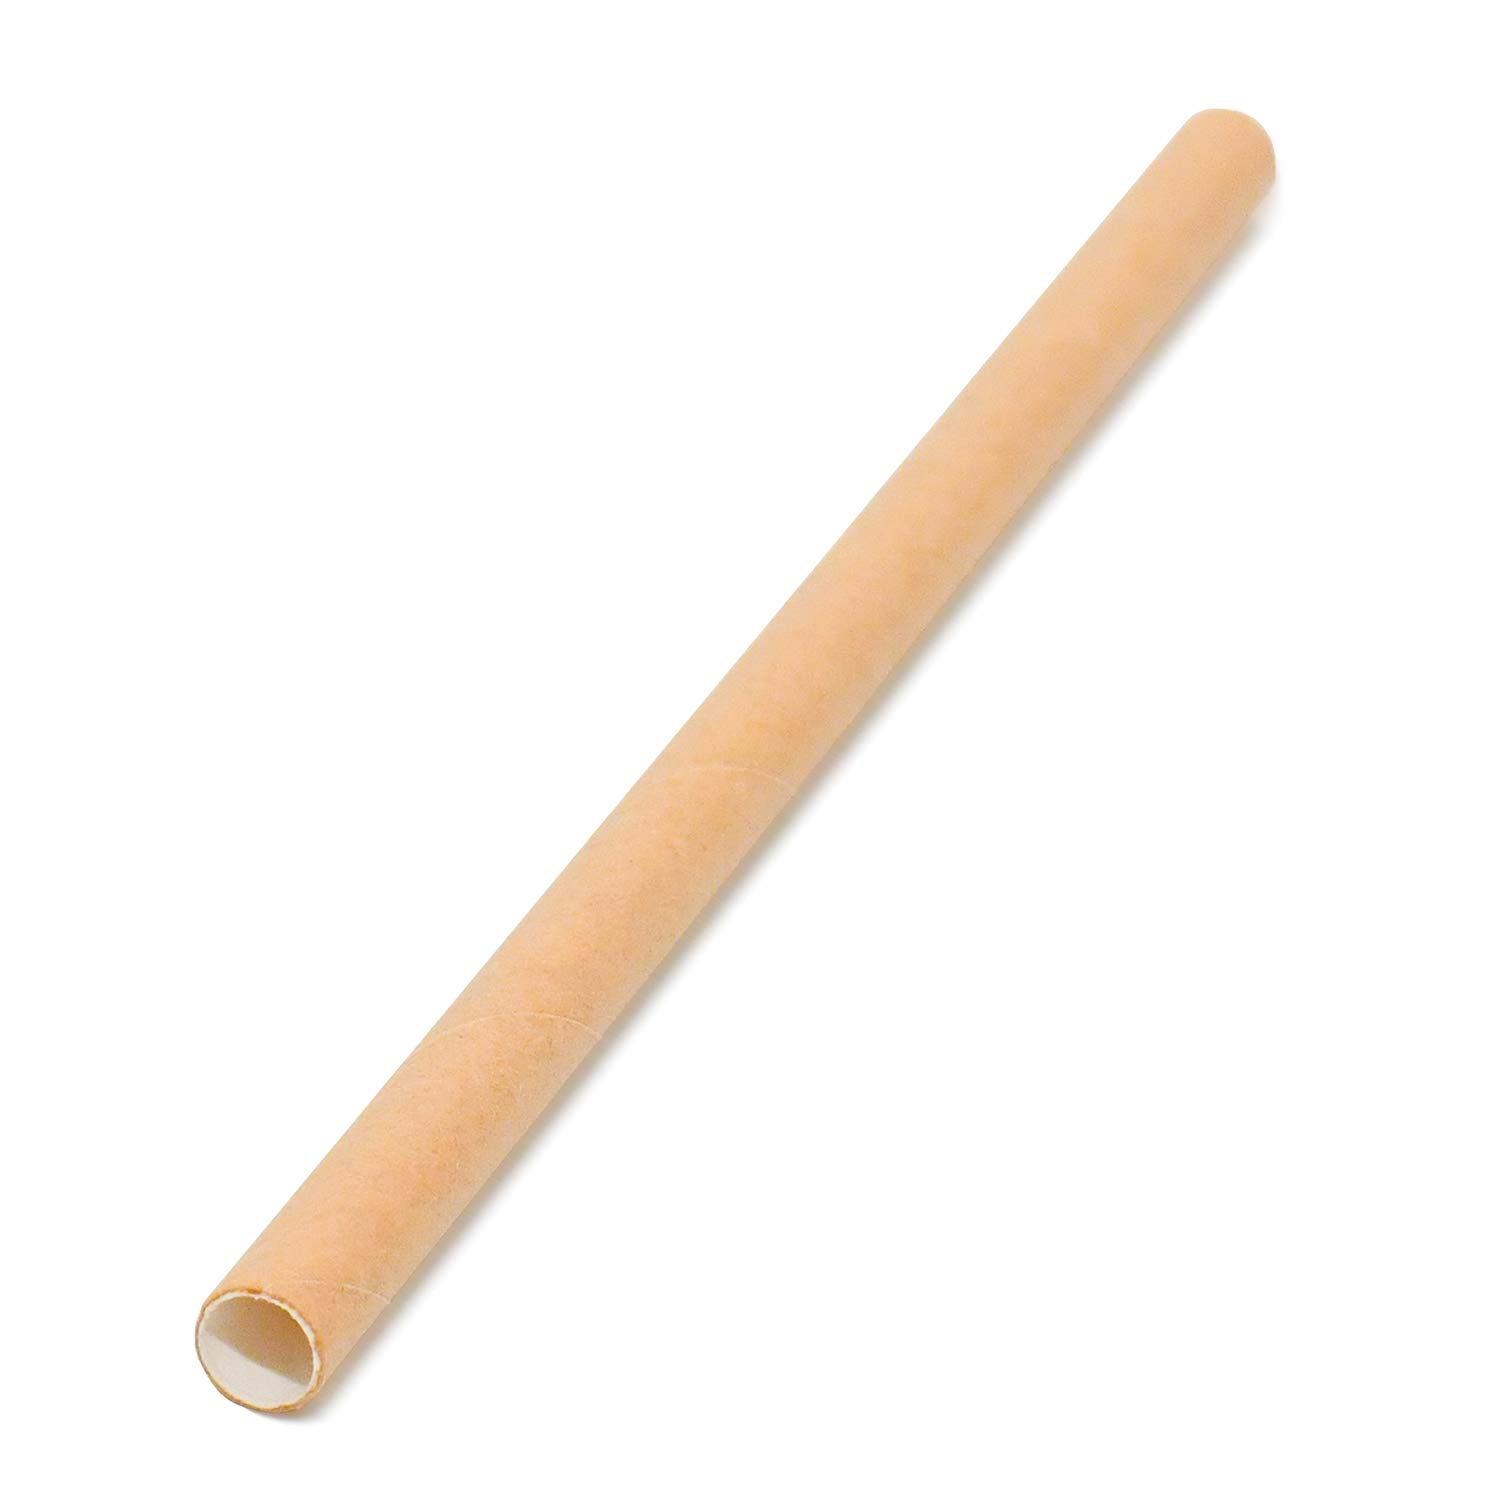 """MarZ Explore MarZ 5"""" x .25"""" Inch Kraft Paper Cocktail Straws Eco-friendly Compostable Biodegradable FDA Approved, Value Pack 200 pcs. per polybag (Natural Kraft Brown)"""